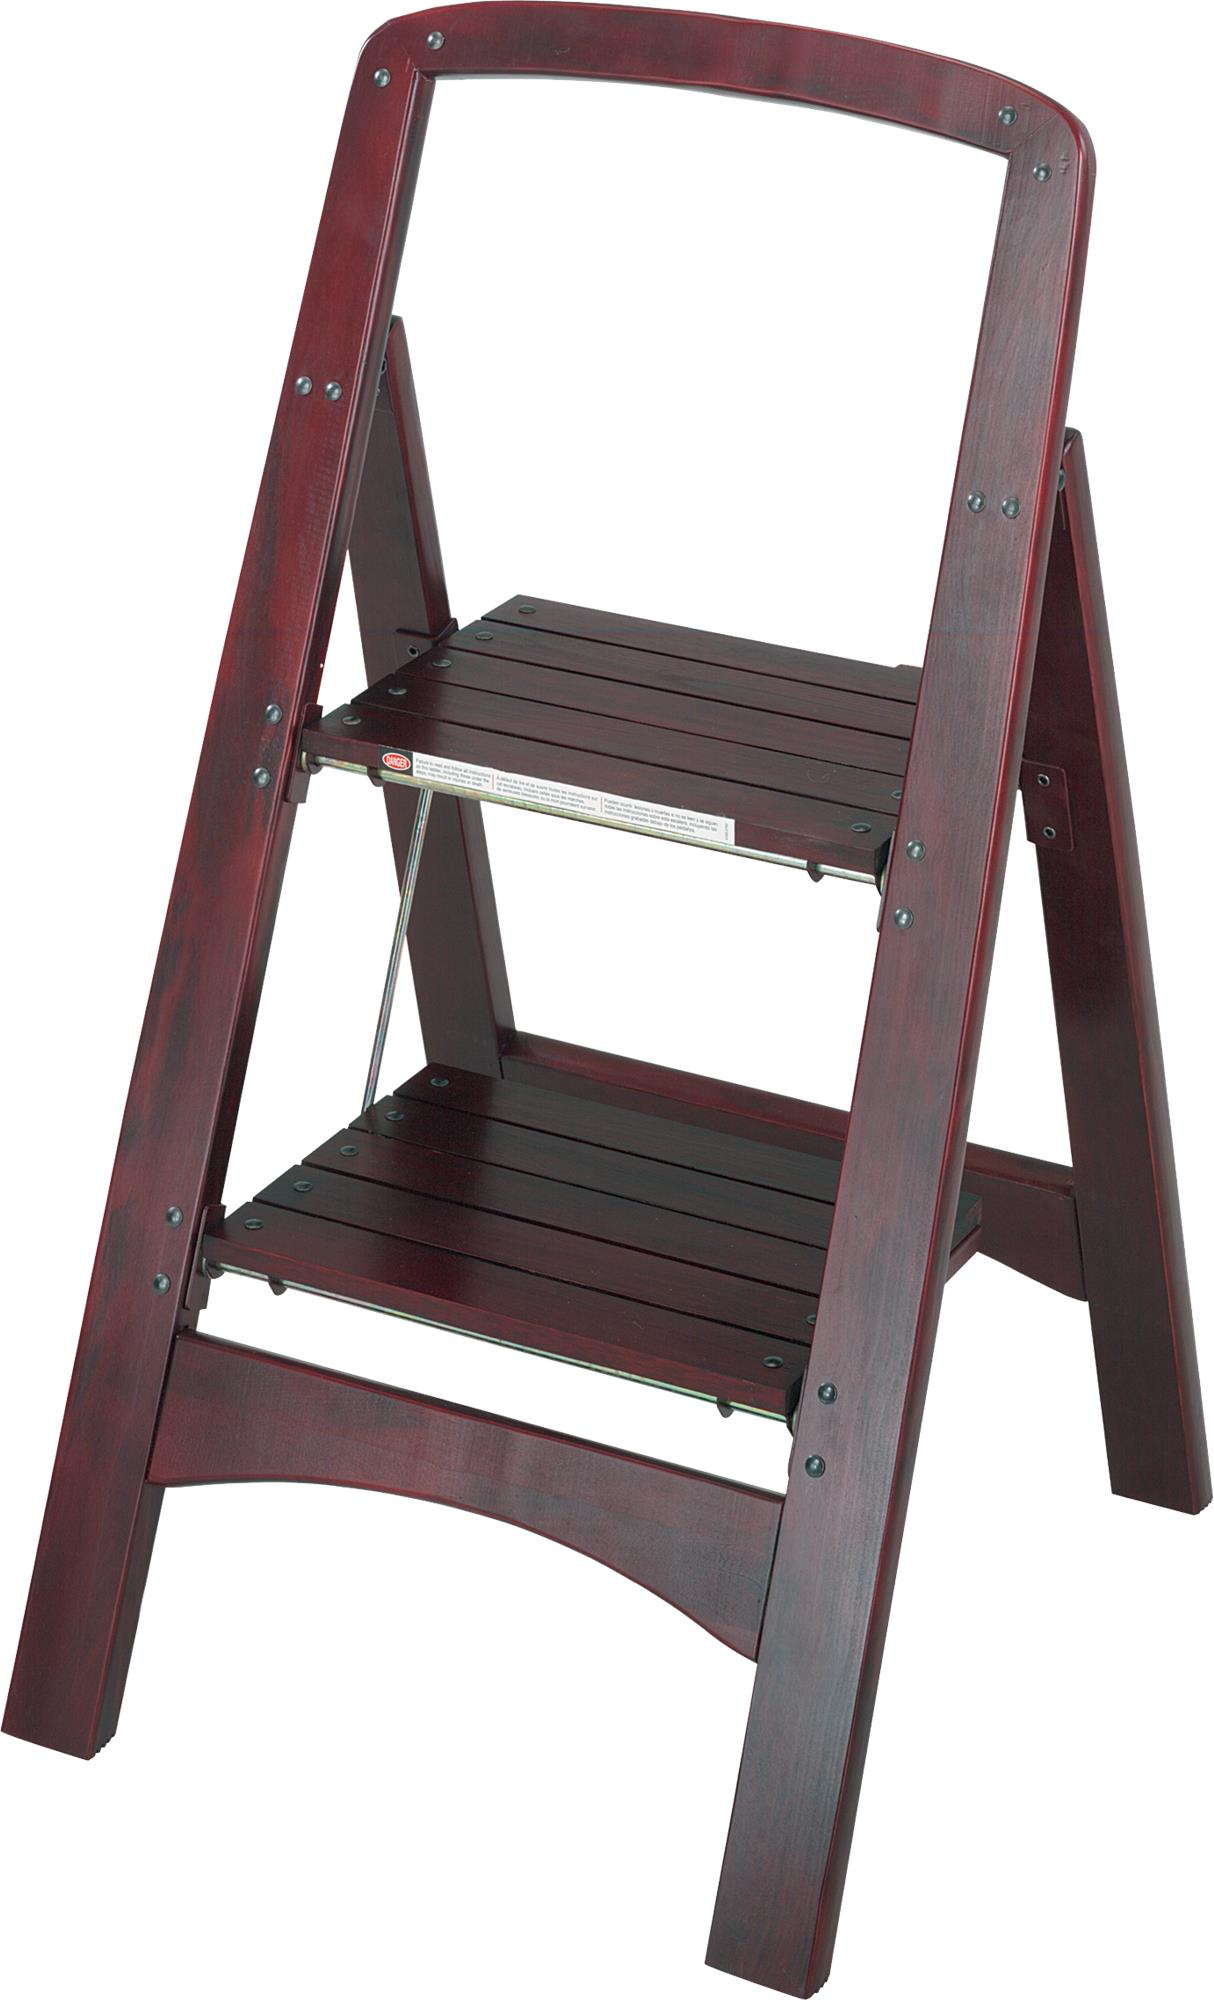 Cool Cosco Two Step Rockford Wood Step Stool White Caraccident5 Cool Chair Designs And Ideas Caraccident5Info